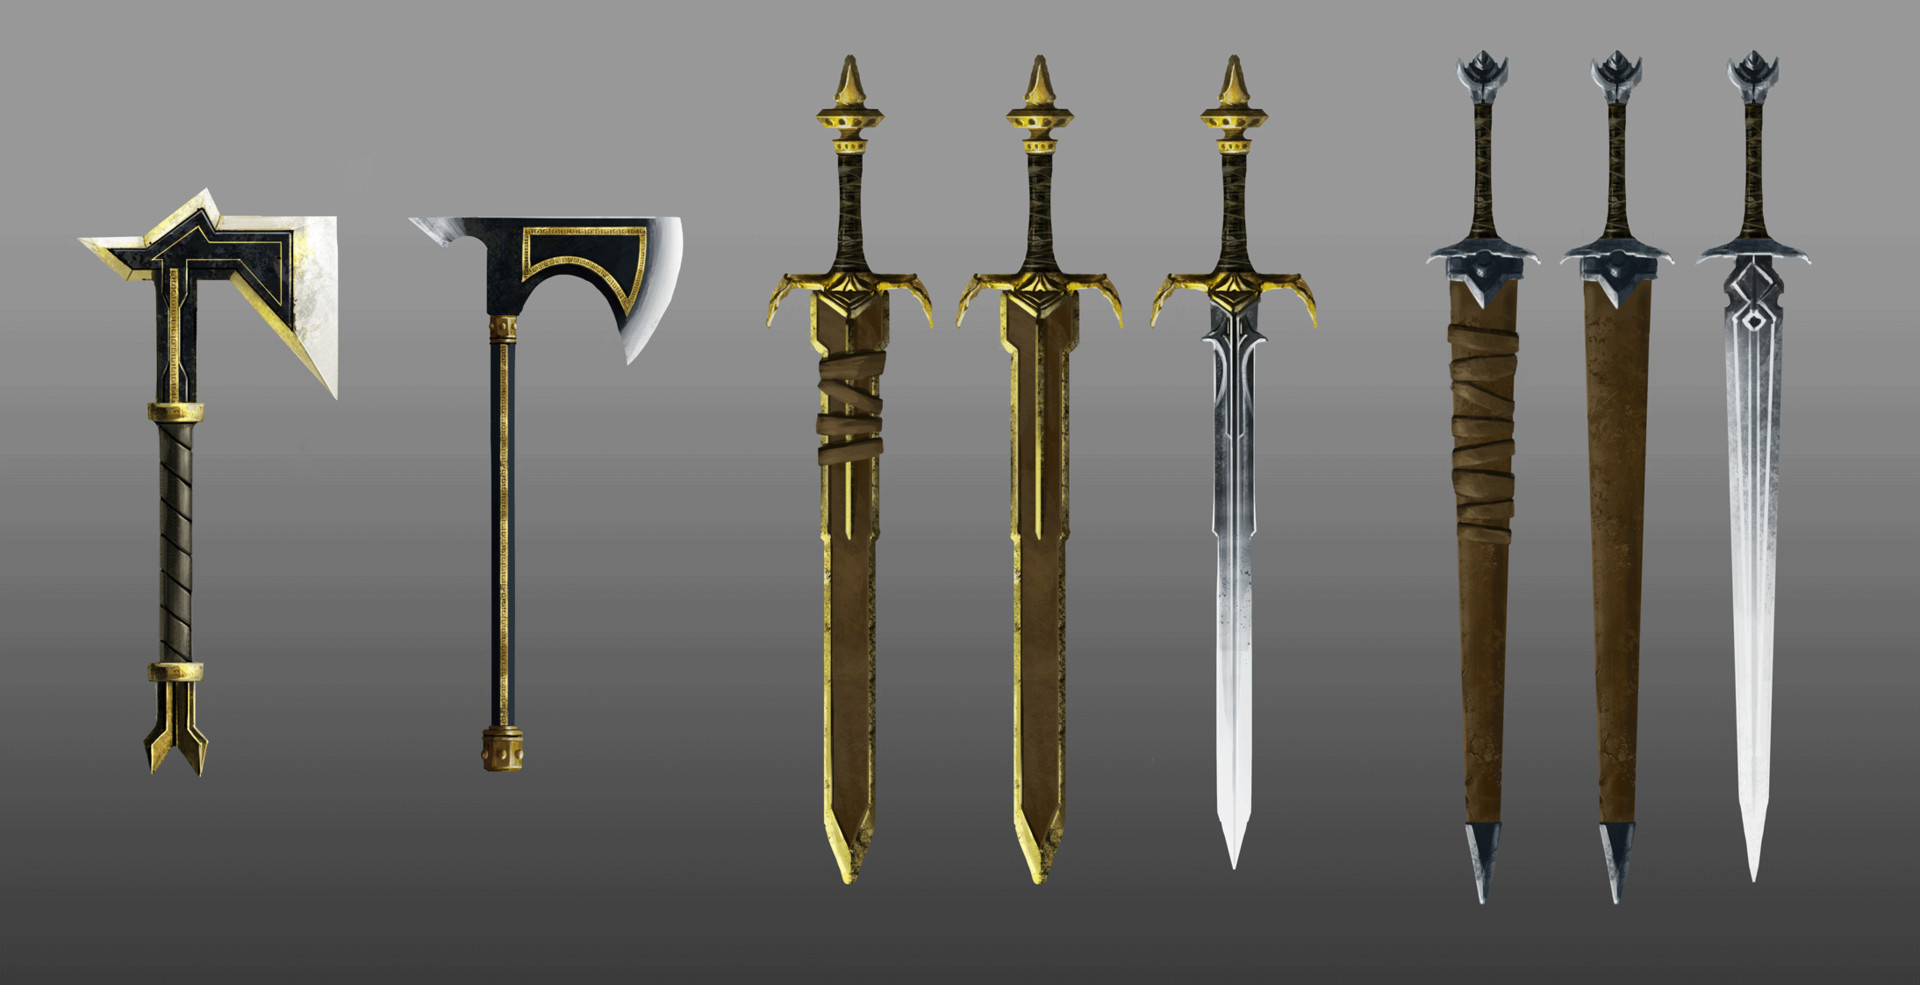 Artstation Melee Weapon Concepts Jose Martins Leite